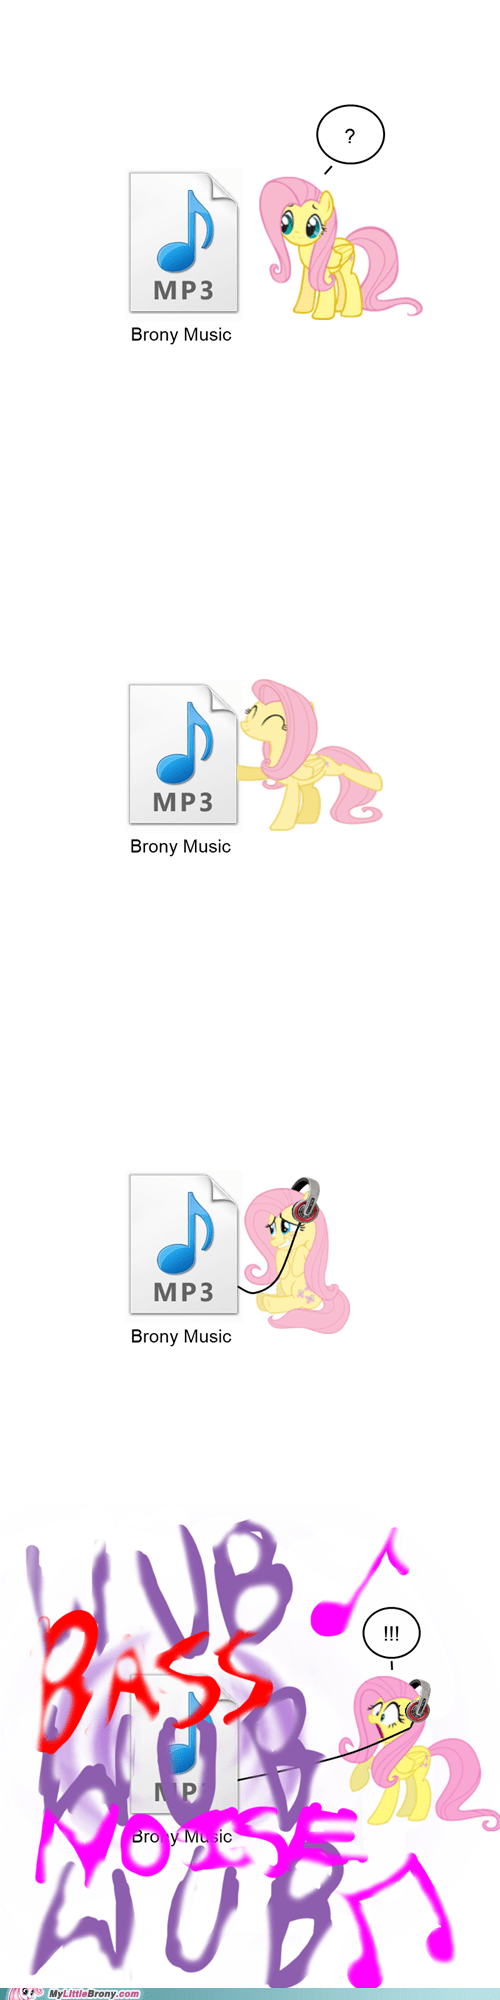 Bronies dubstep fluttershy Music remix the internets - 5779122432